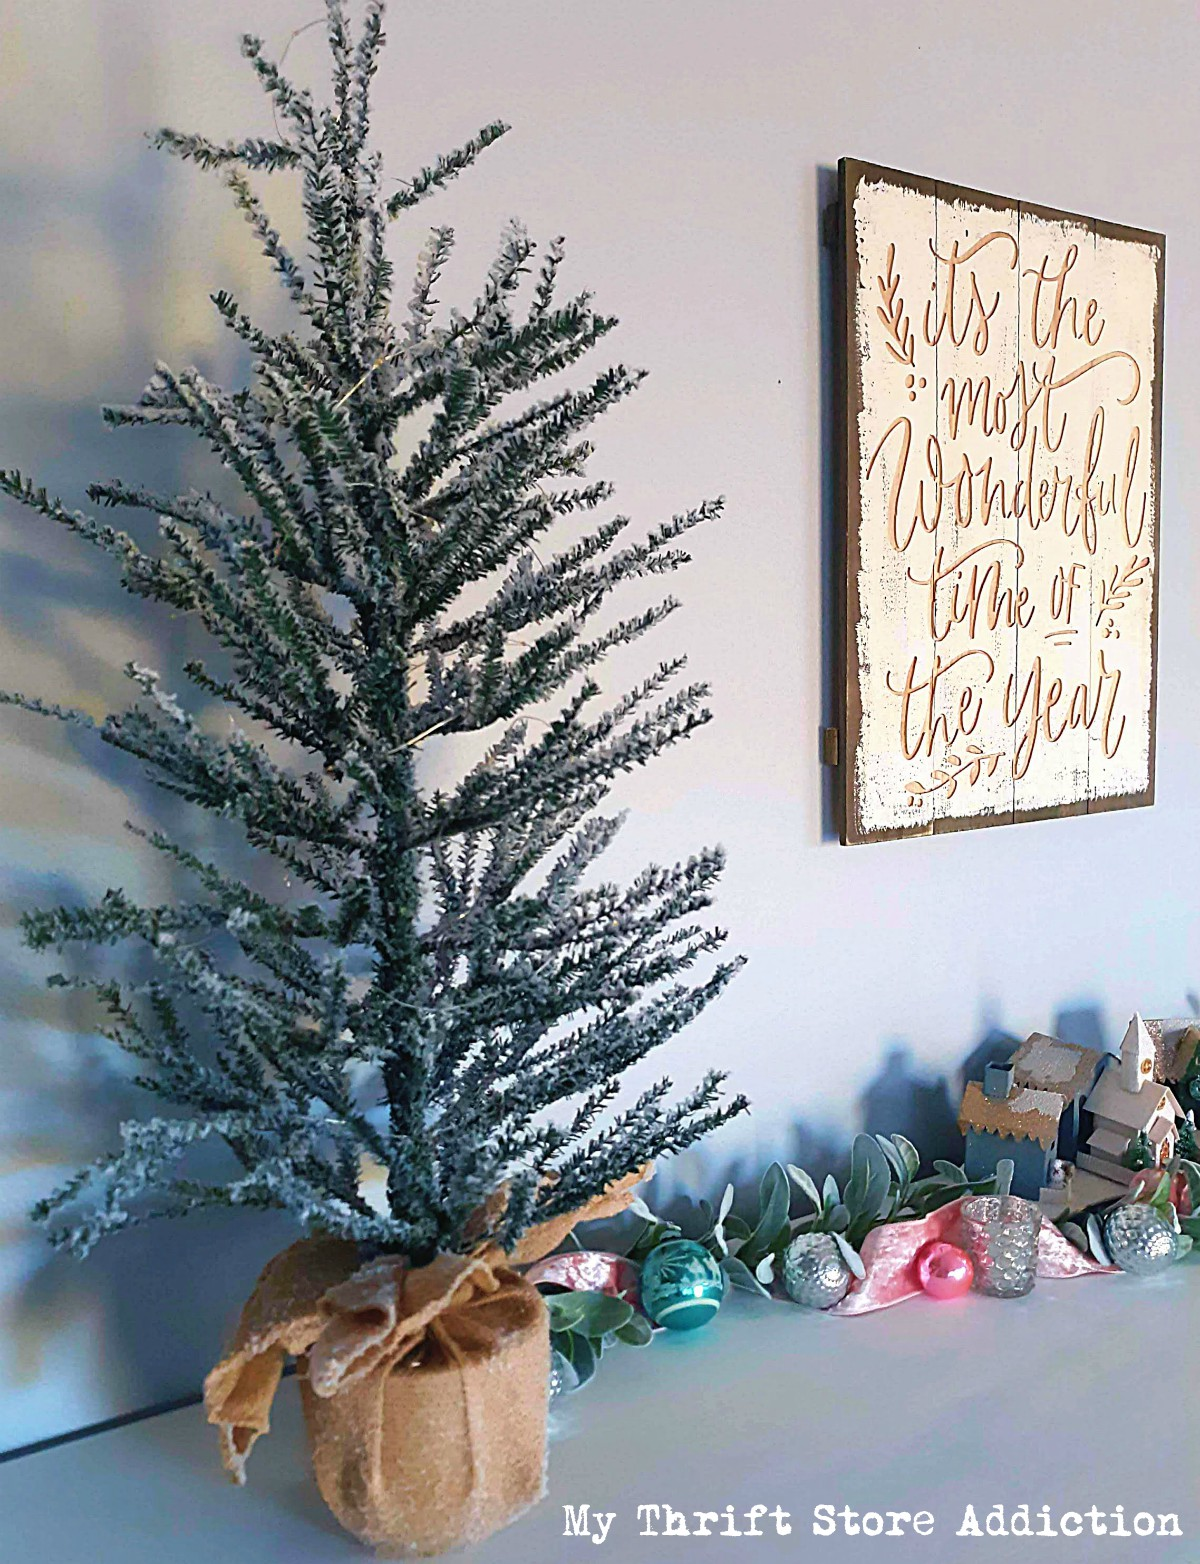 Christmas home tour by My Thrift Store Addiction